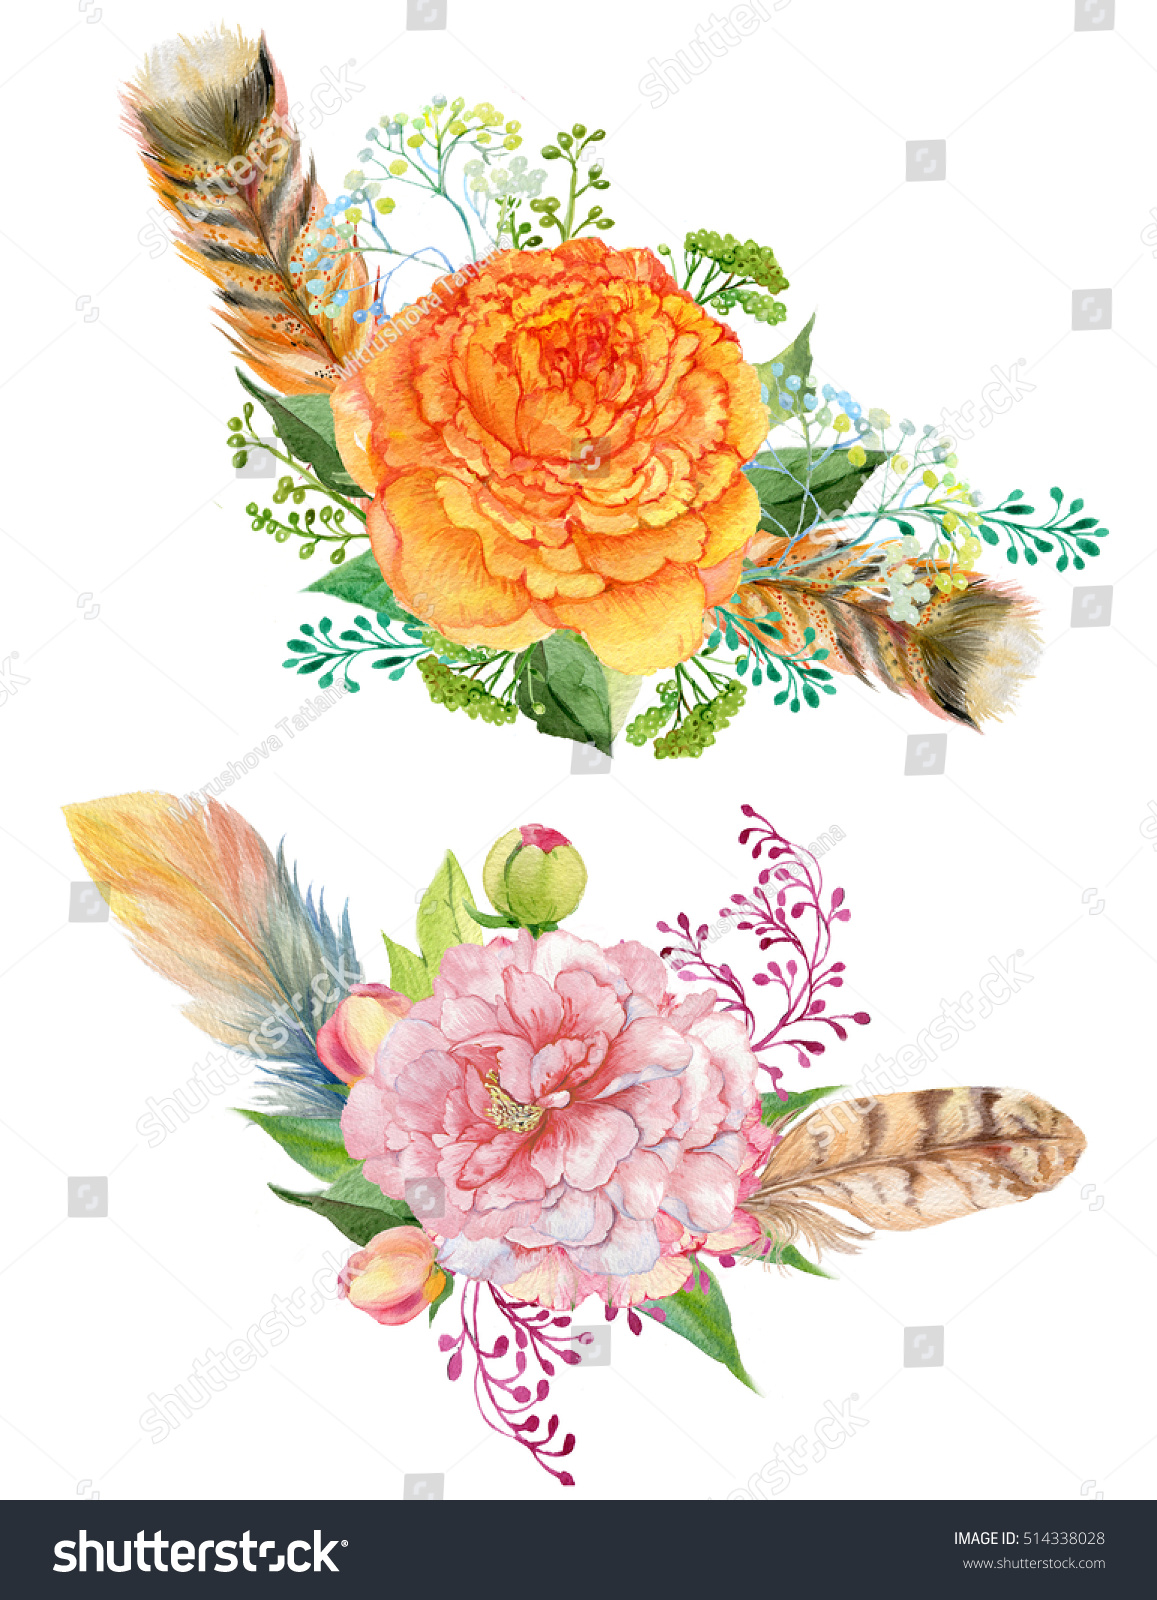 Watercolor floral bouquet feathers and roses composition for id 514338028 izmirmasajfo